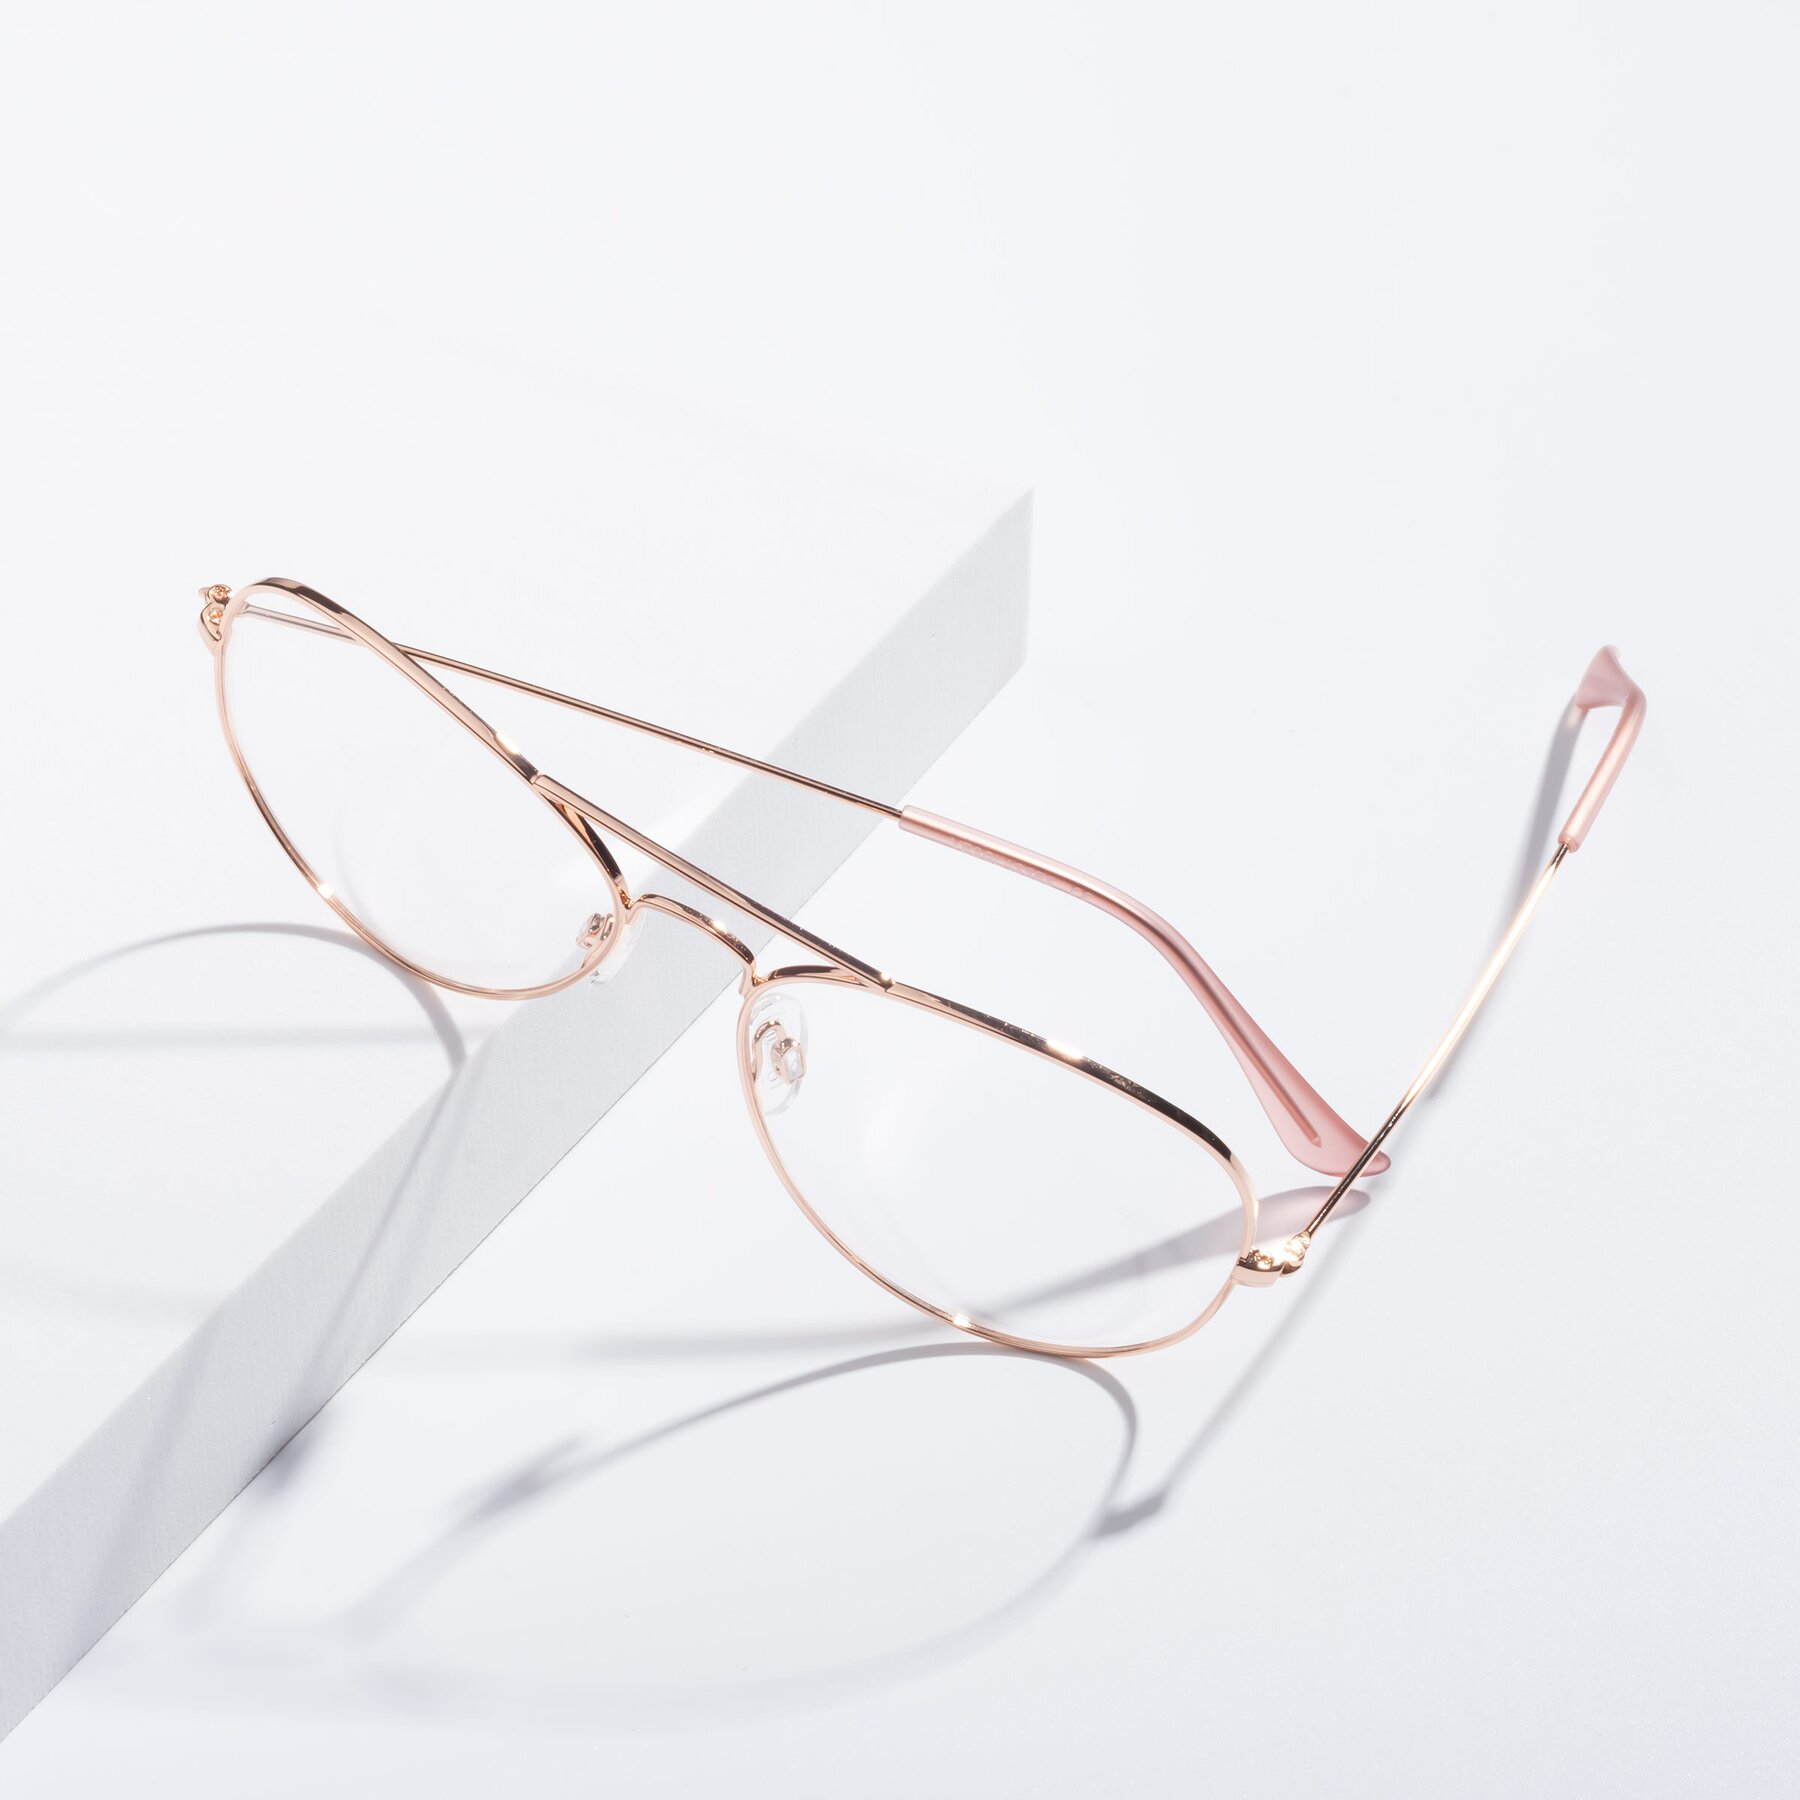 Lifestyle photography #2 of SSR035 in Rose Gold with Clear Eyeglass Lenses